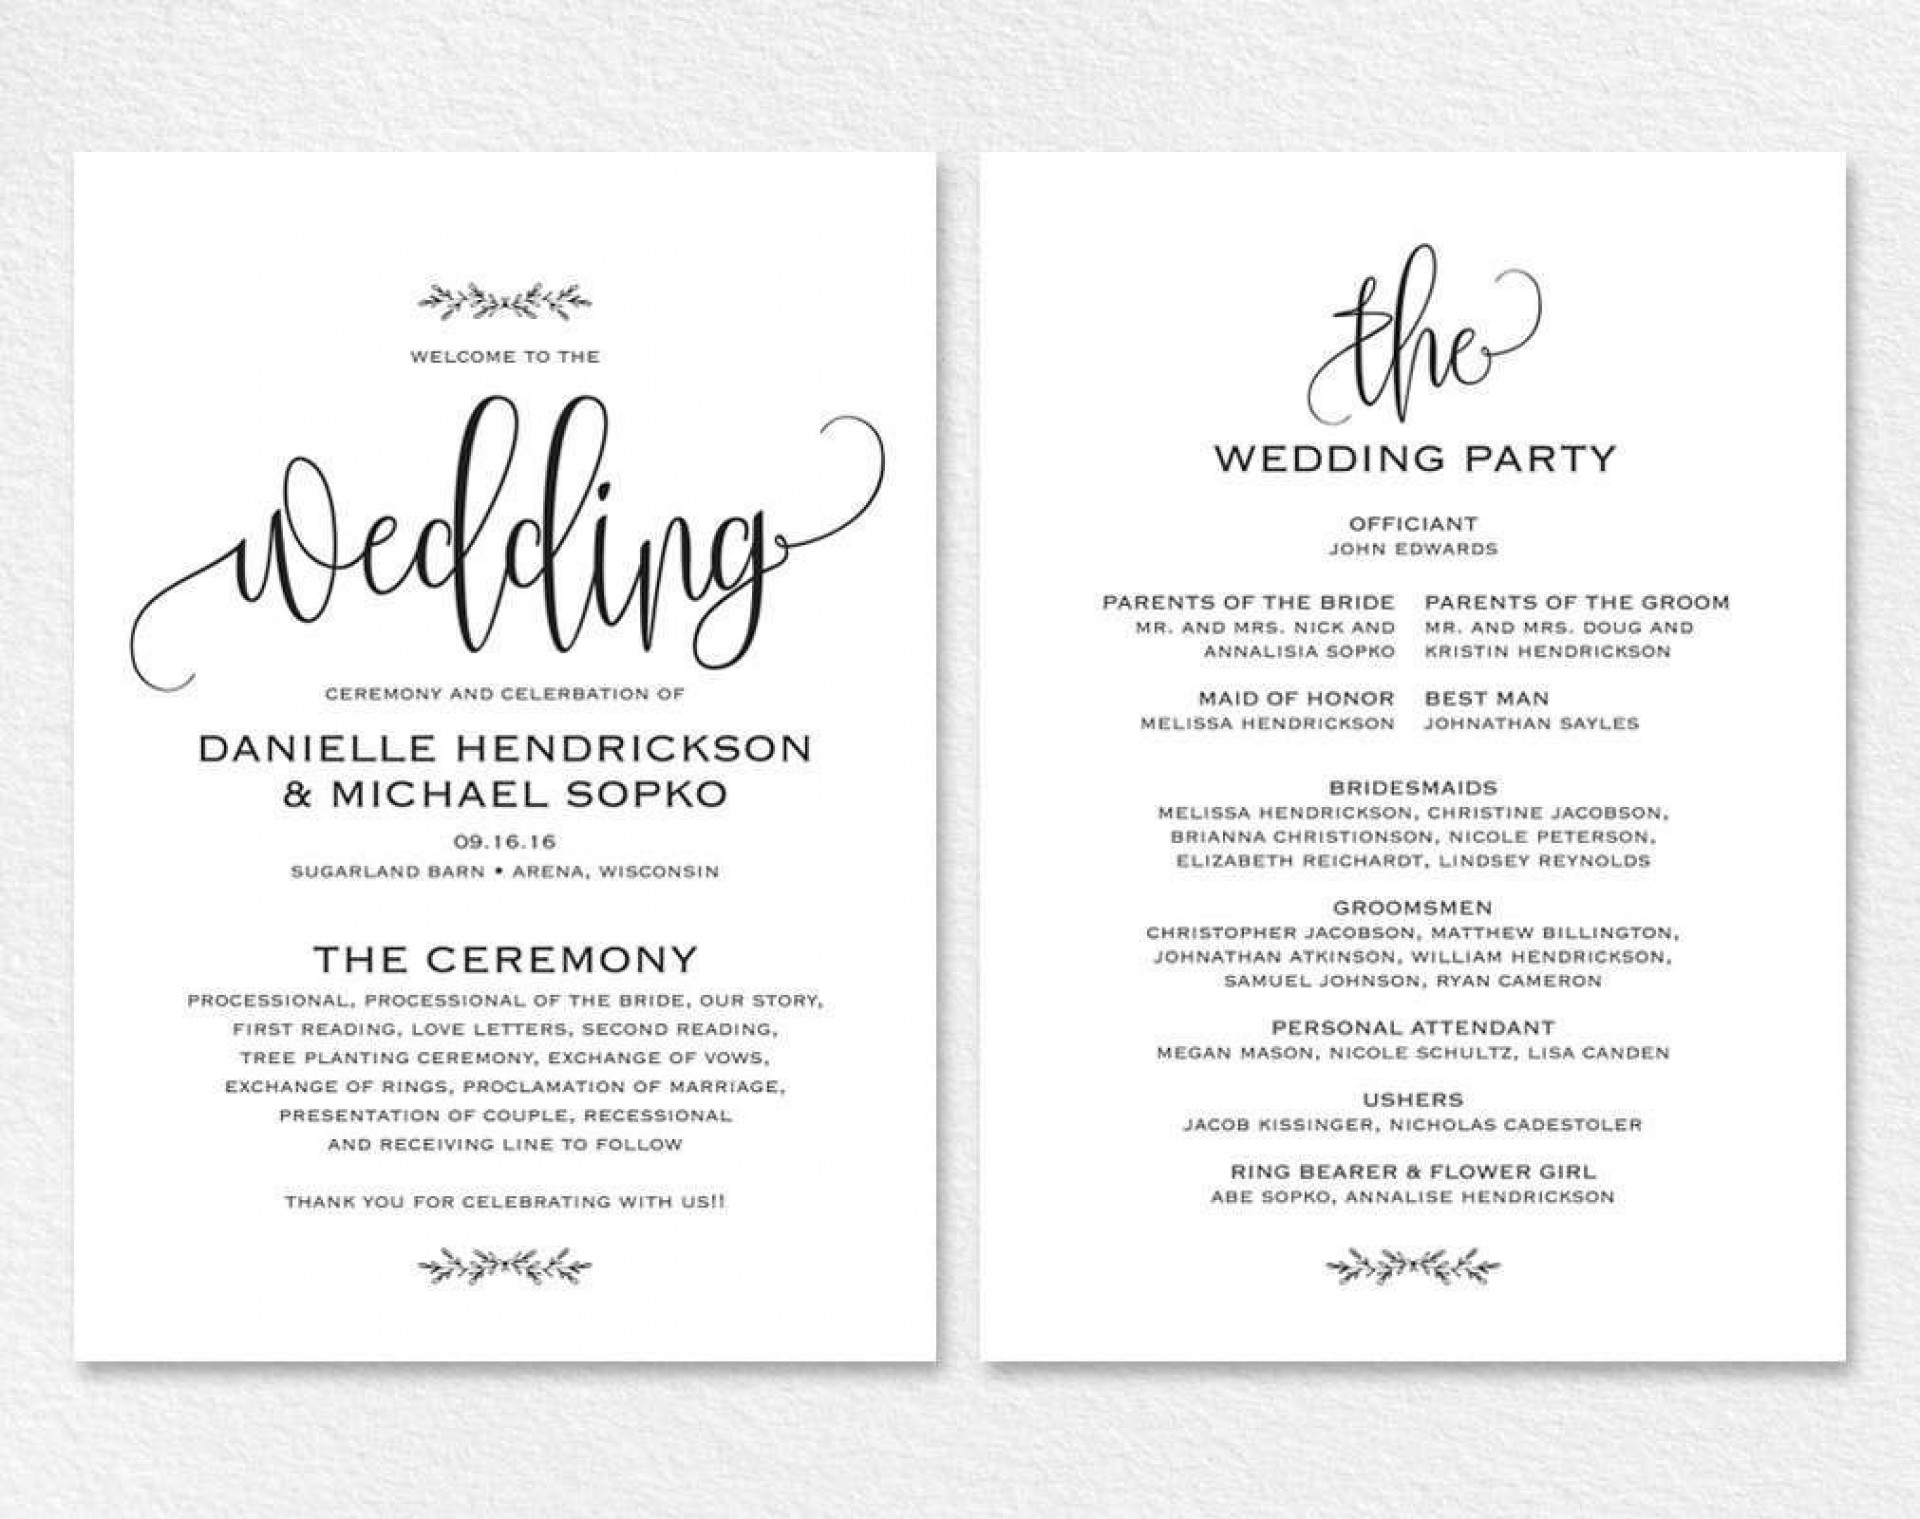 000 Fascinating Wedding Invitation Template Word Concept  Invite Wording Uk Anniversary Microsoft Free Marriage1920